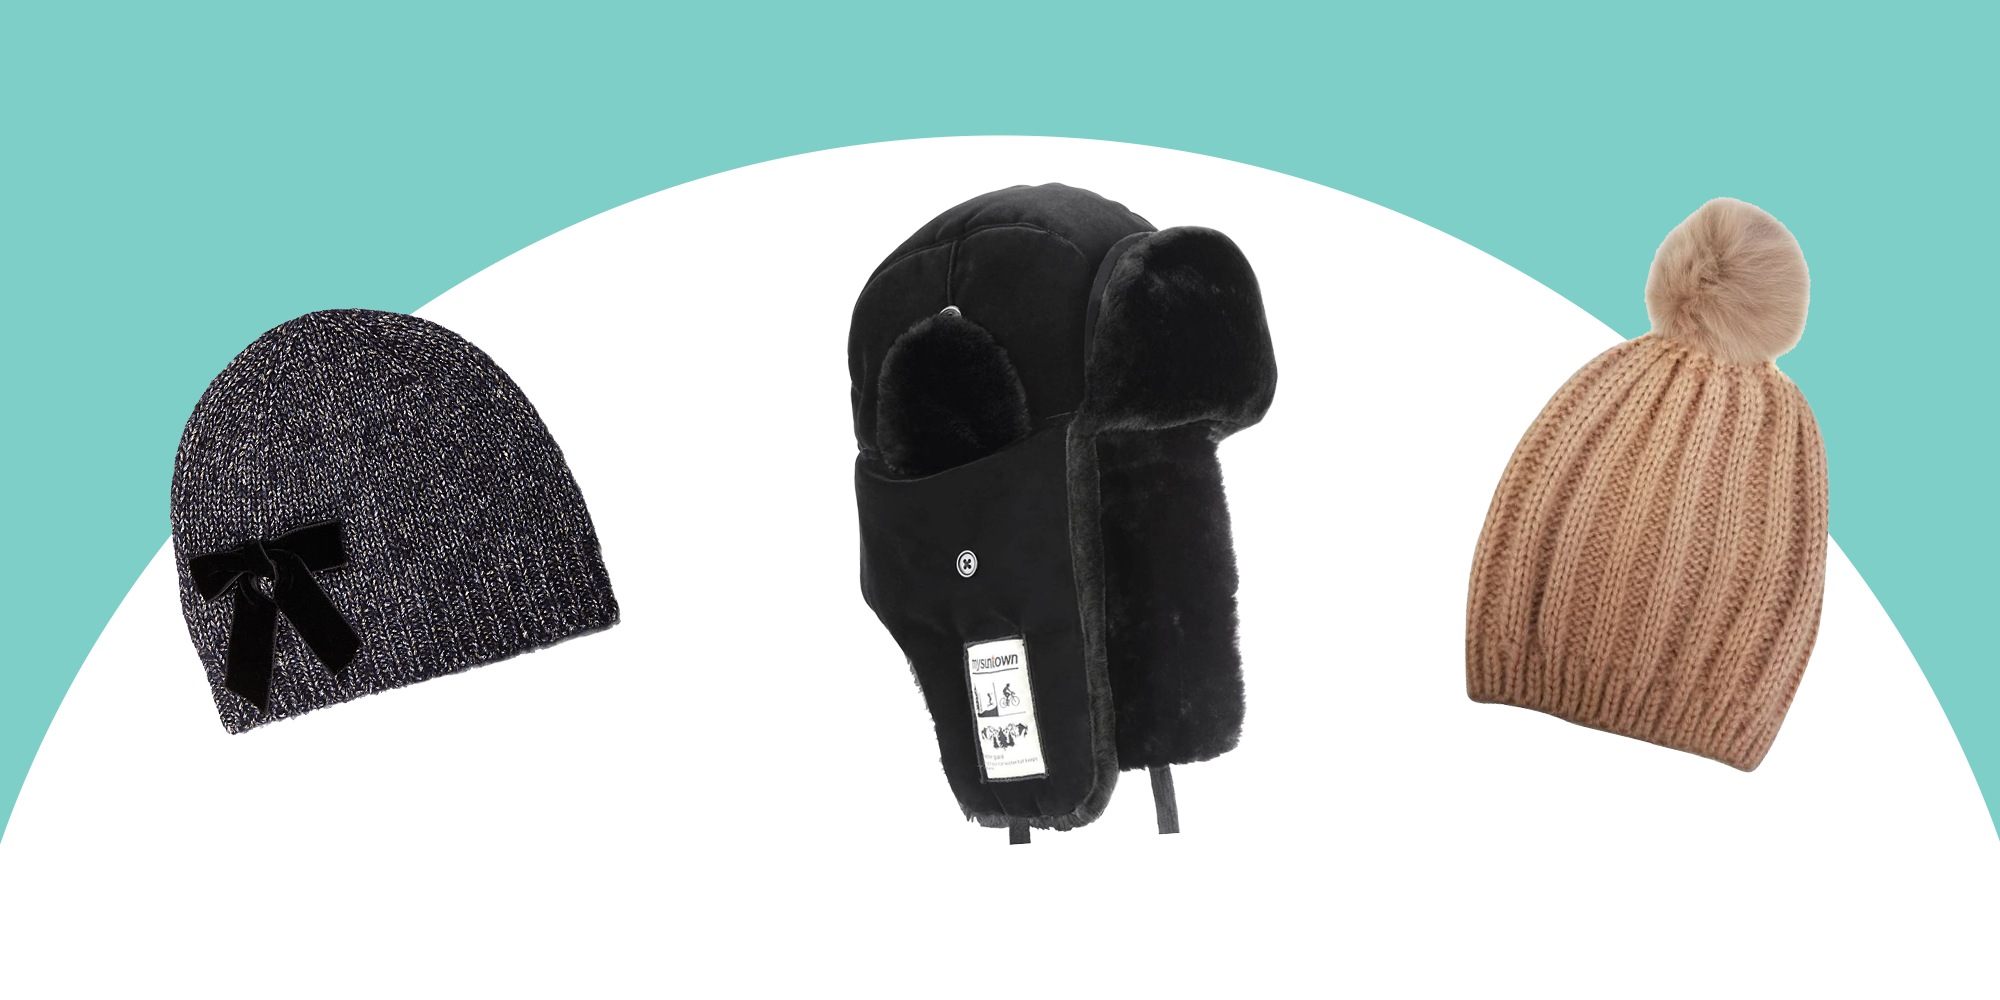 109c6aab2c0 12 Winter Hats To Keep Warm In 2018 — Stylish Hats for Cold Weather